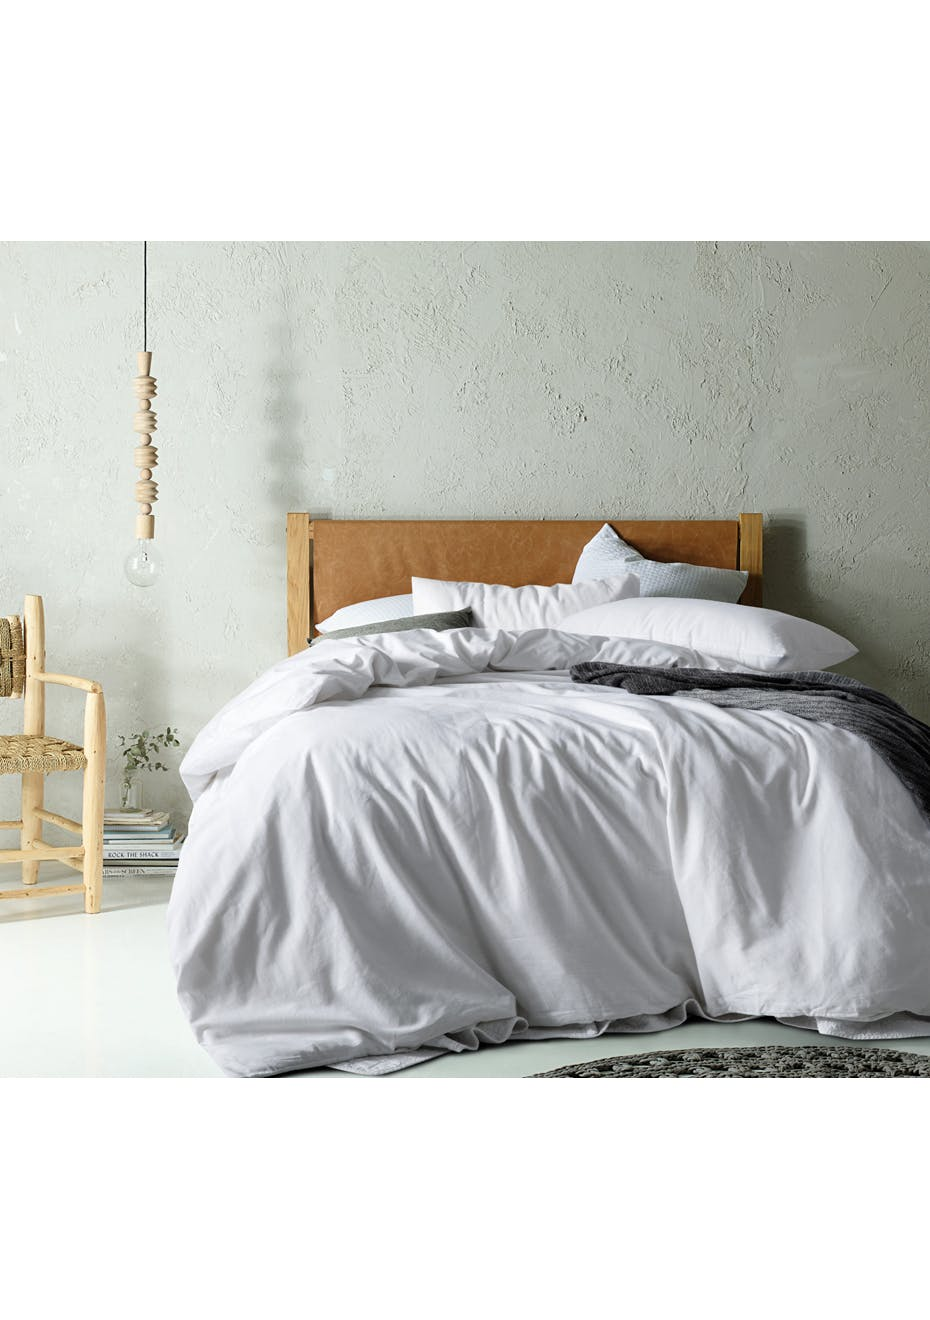 Under 50 Linen Vintage Bedding Special Sale Up To 70 Off On Onceit